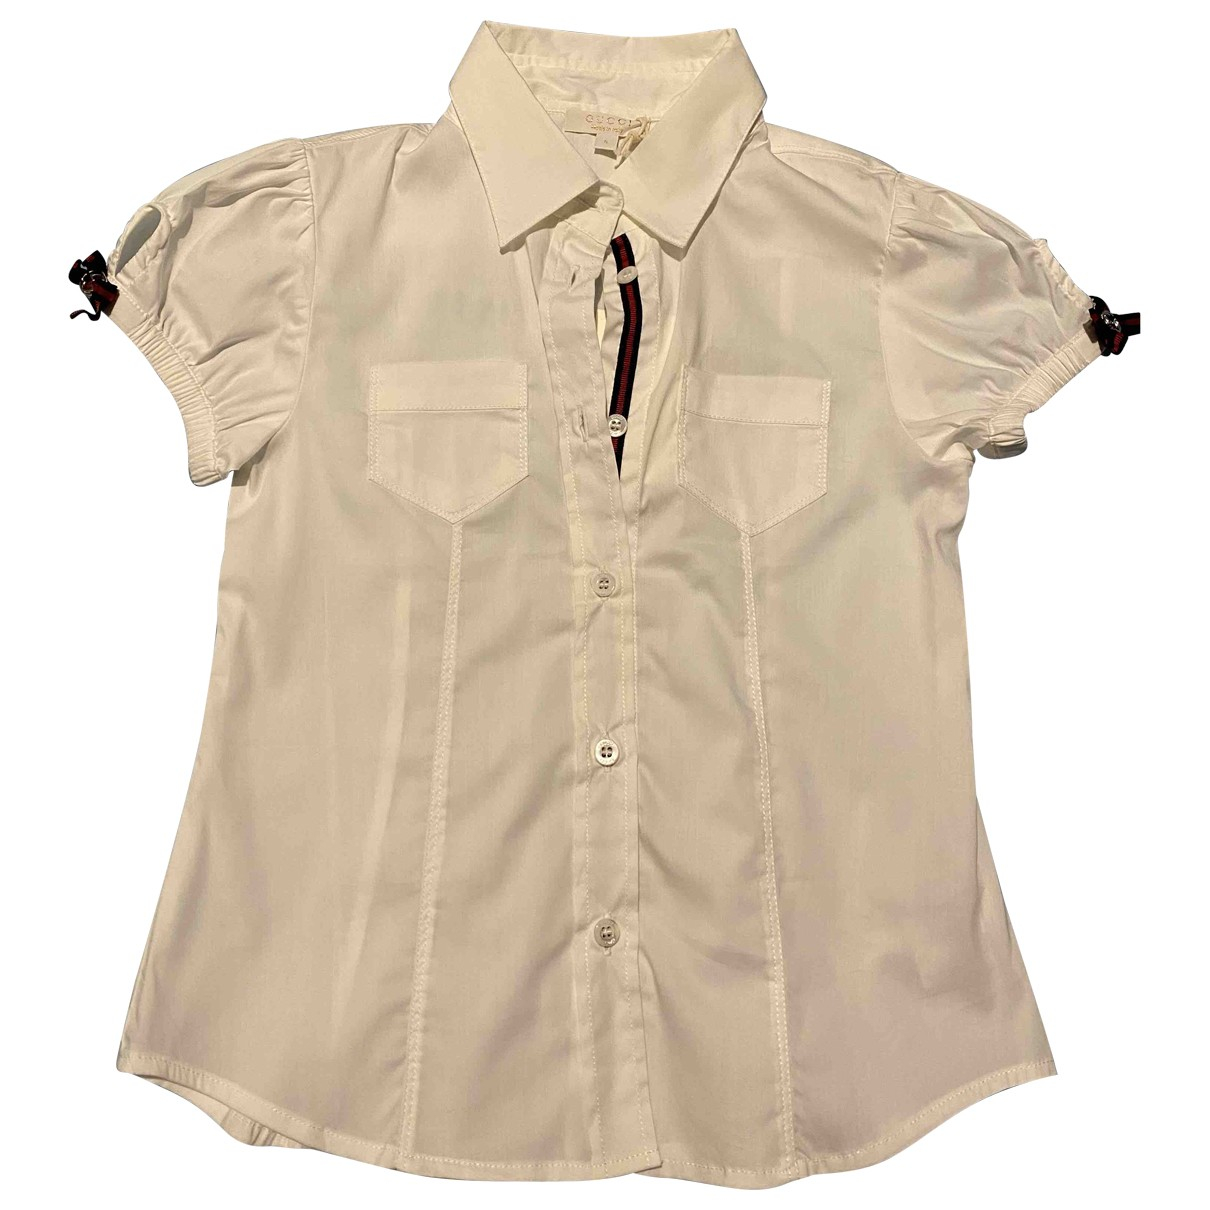 Gucci \N White Cotton  top for Kids 5 years - up to 108cm